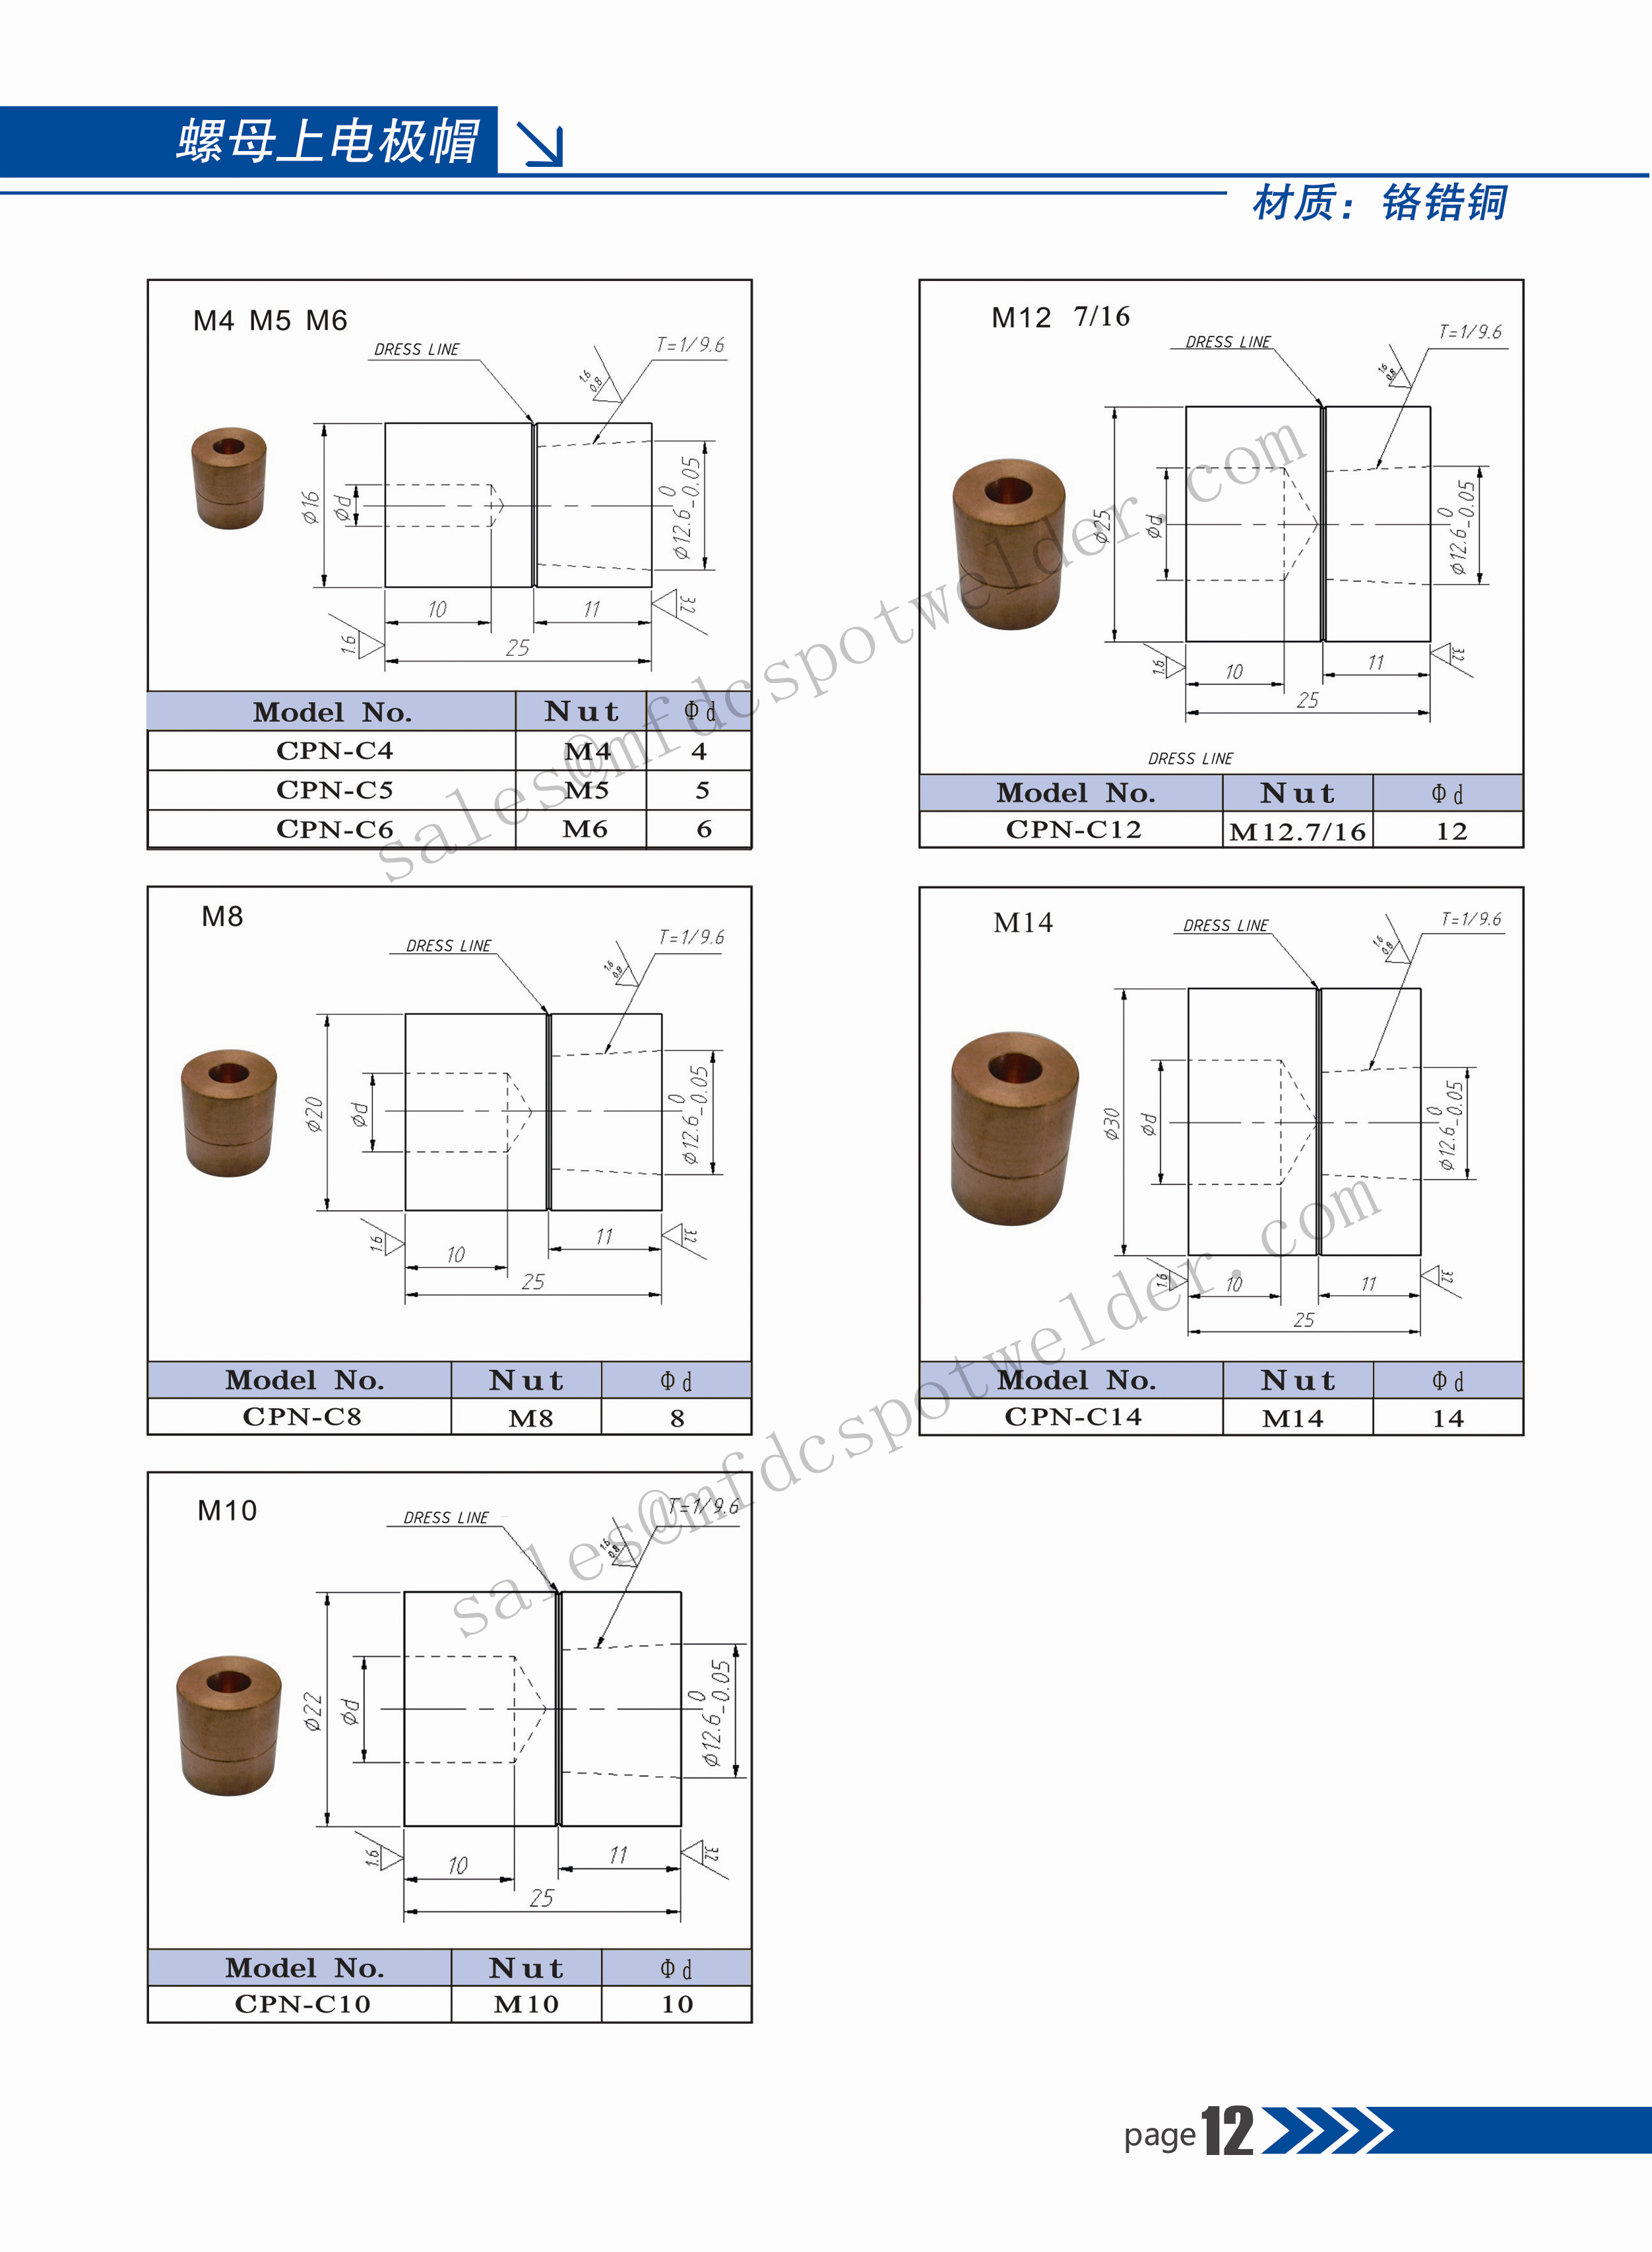 Automotive Welding Diagrams Detailed Schematics Diagram Laser Nut Electrode For Stud Rosen Resistance Farm